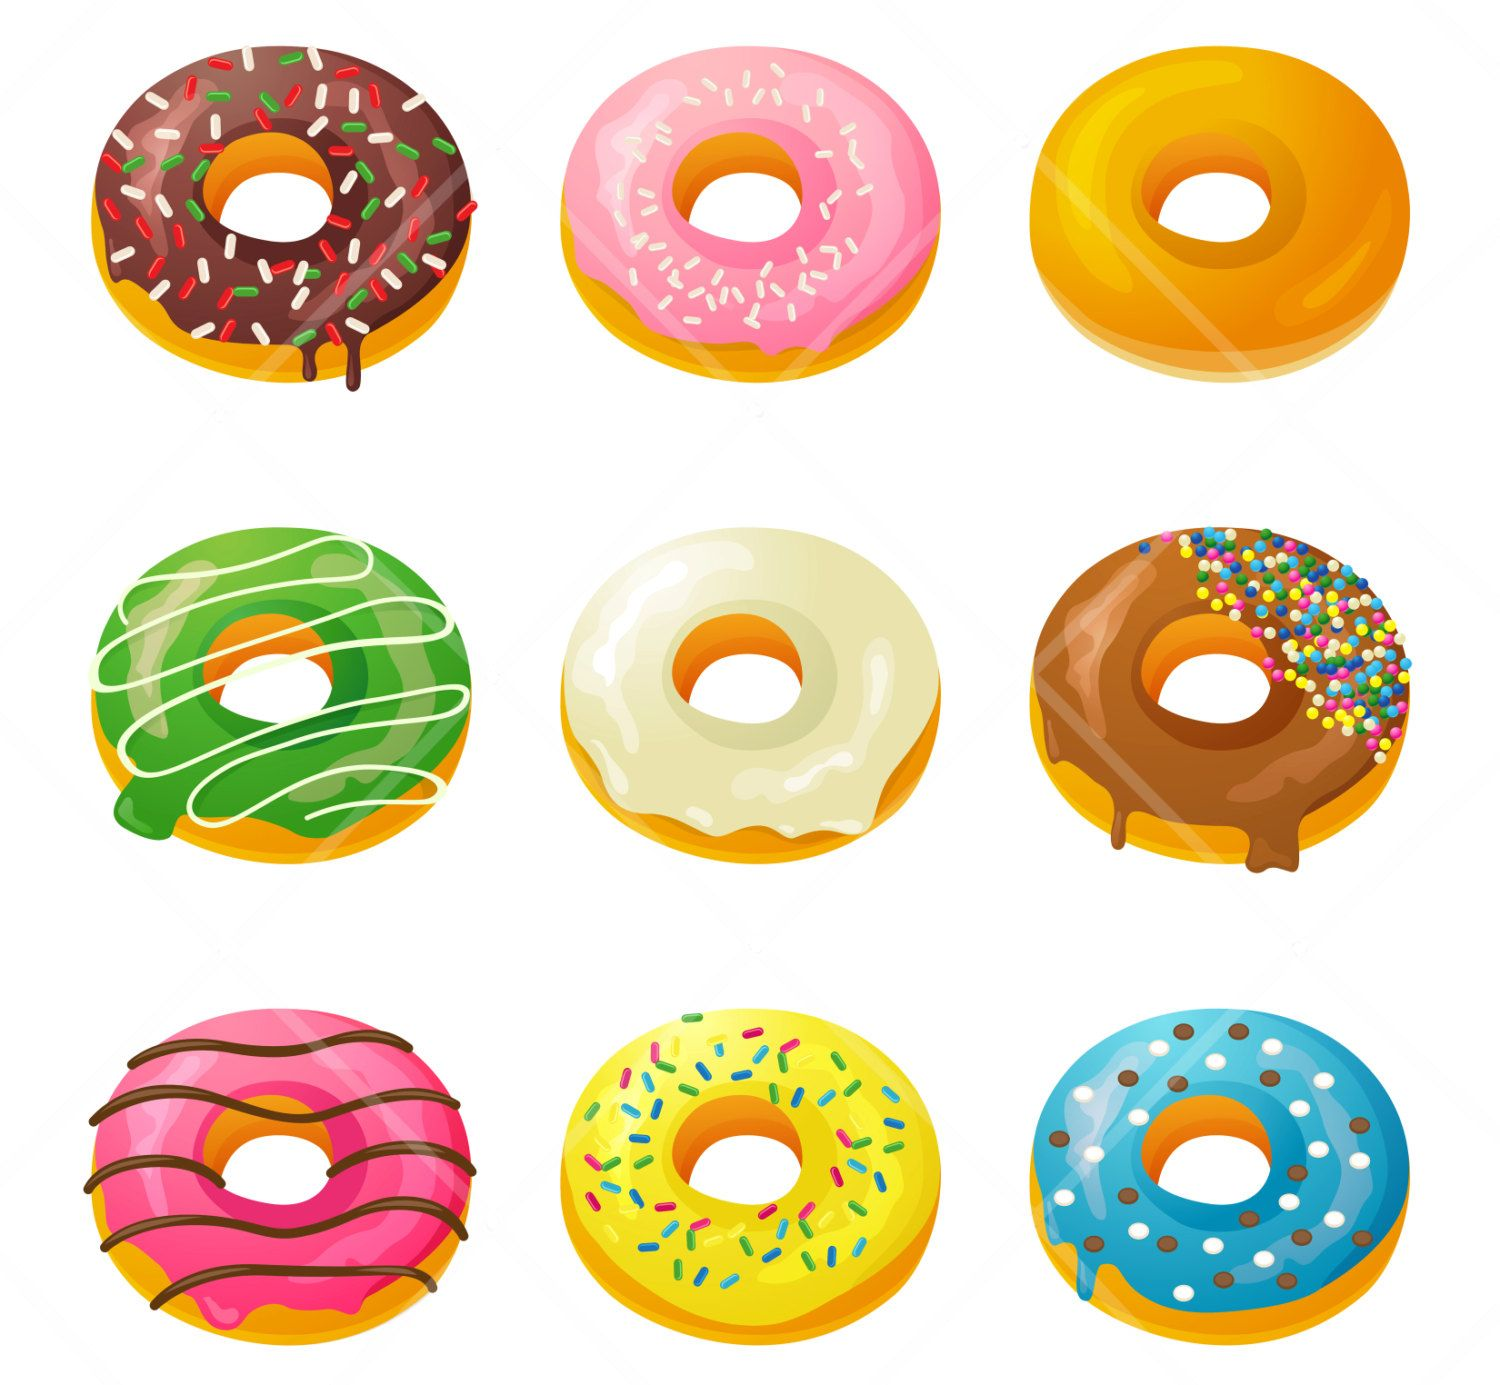 Box Of Donuts Clipart Donuts cakes clipart.